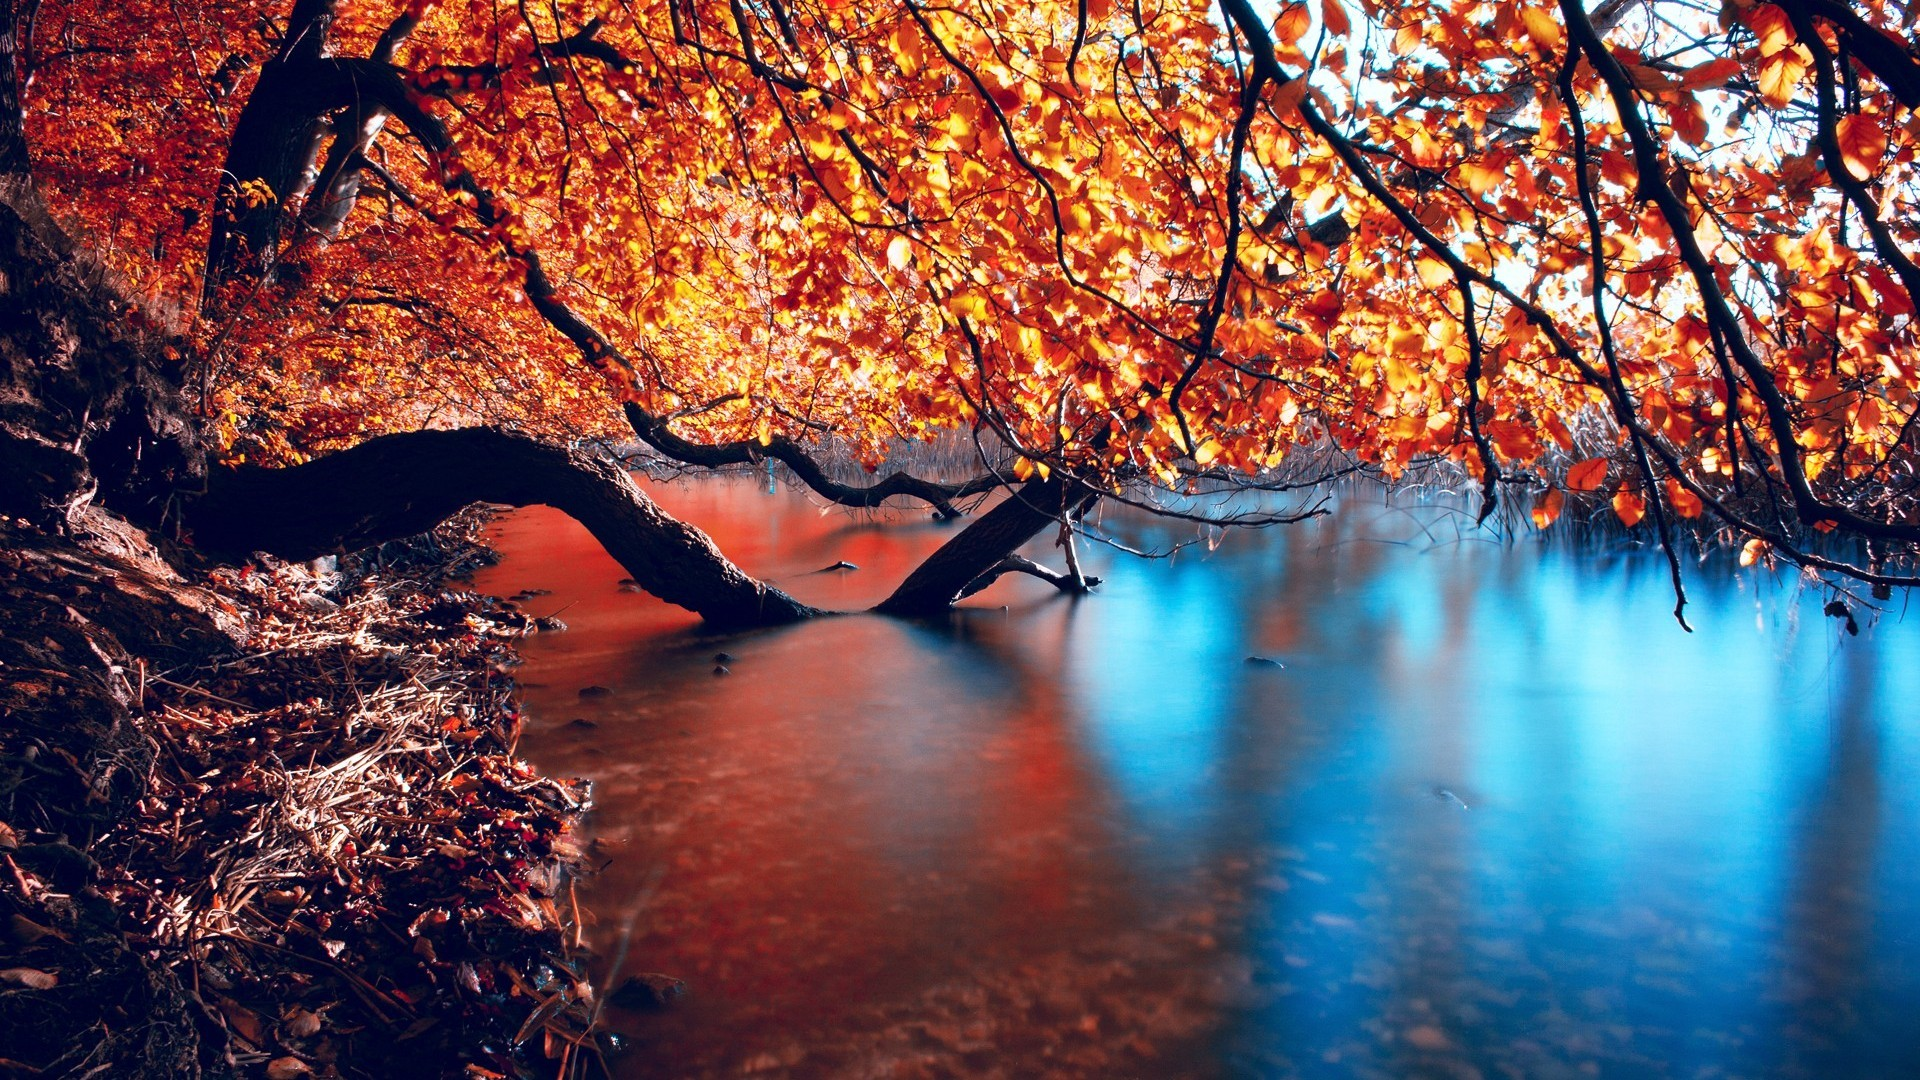 Collection of Autumn Wallpaper Hd on HDWallpapers